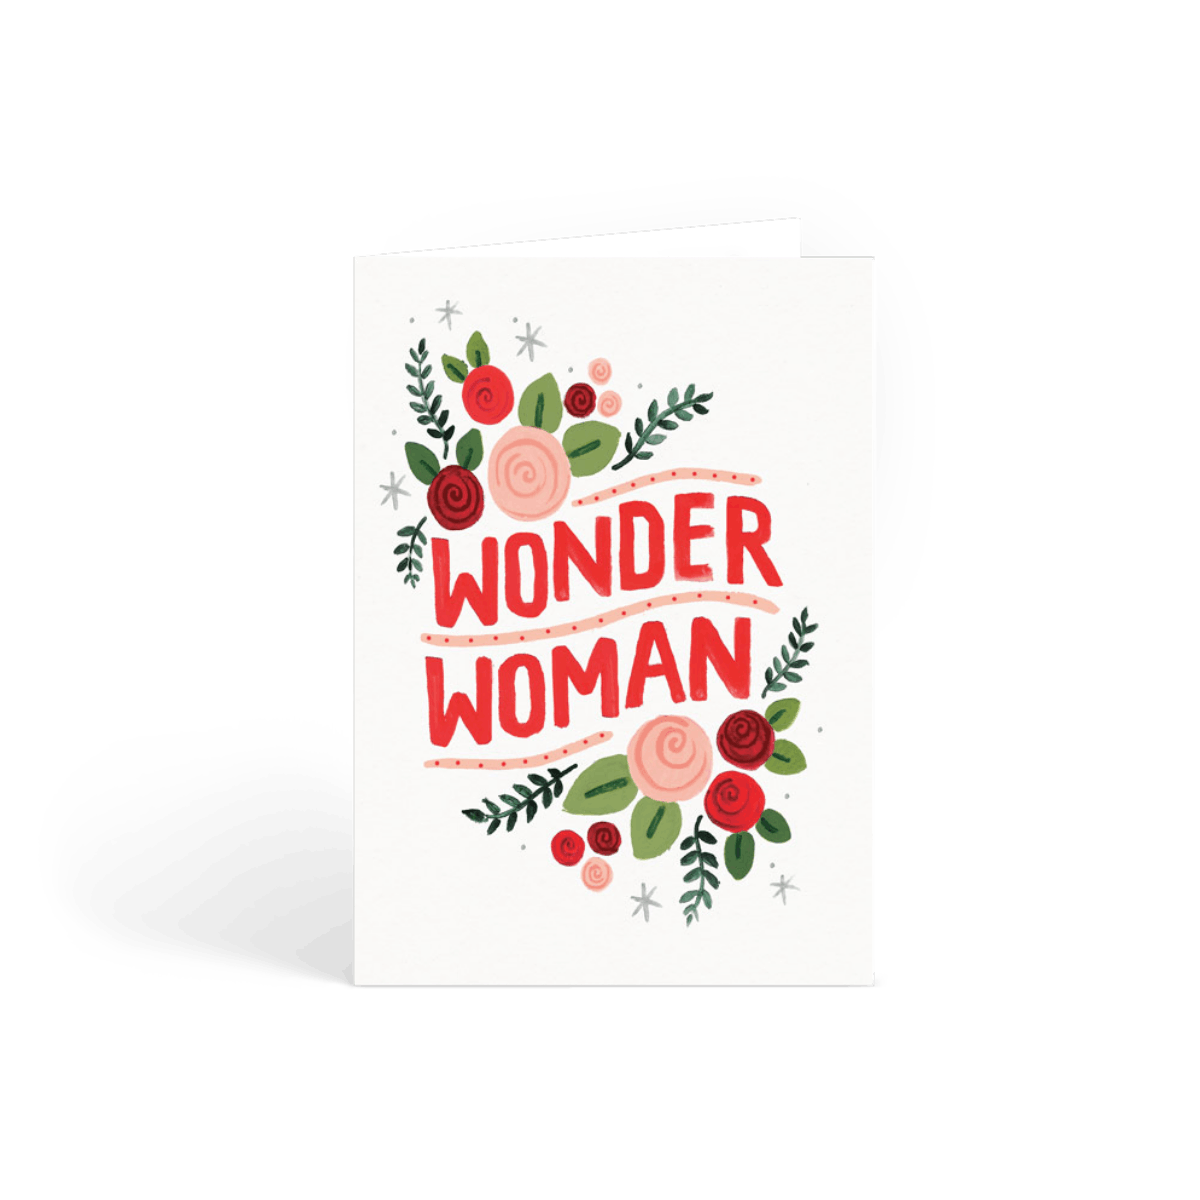 Https%3a%2f%2fwww.papier.com%2fproduct image%2f62062%2f2%2fwonder woman 14721 front 1548360648.png?ixlib=rb 1.1